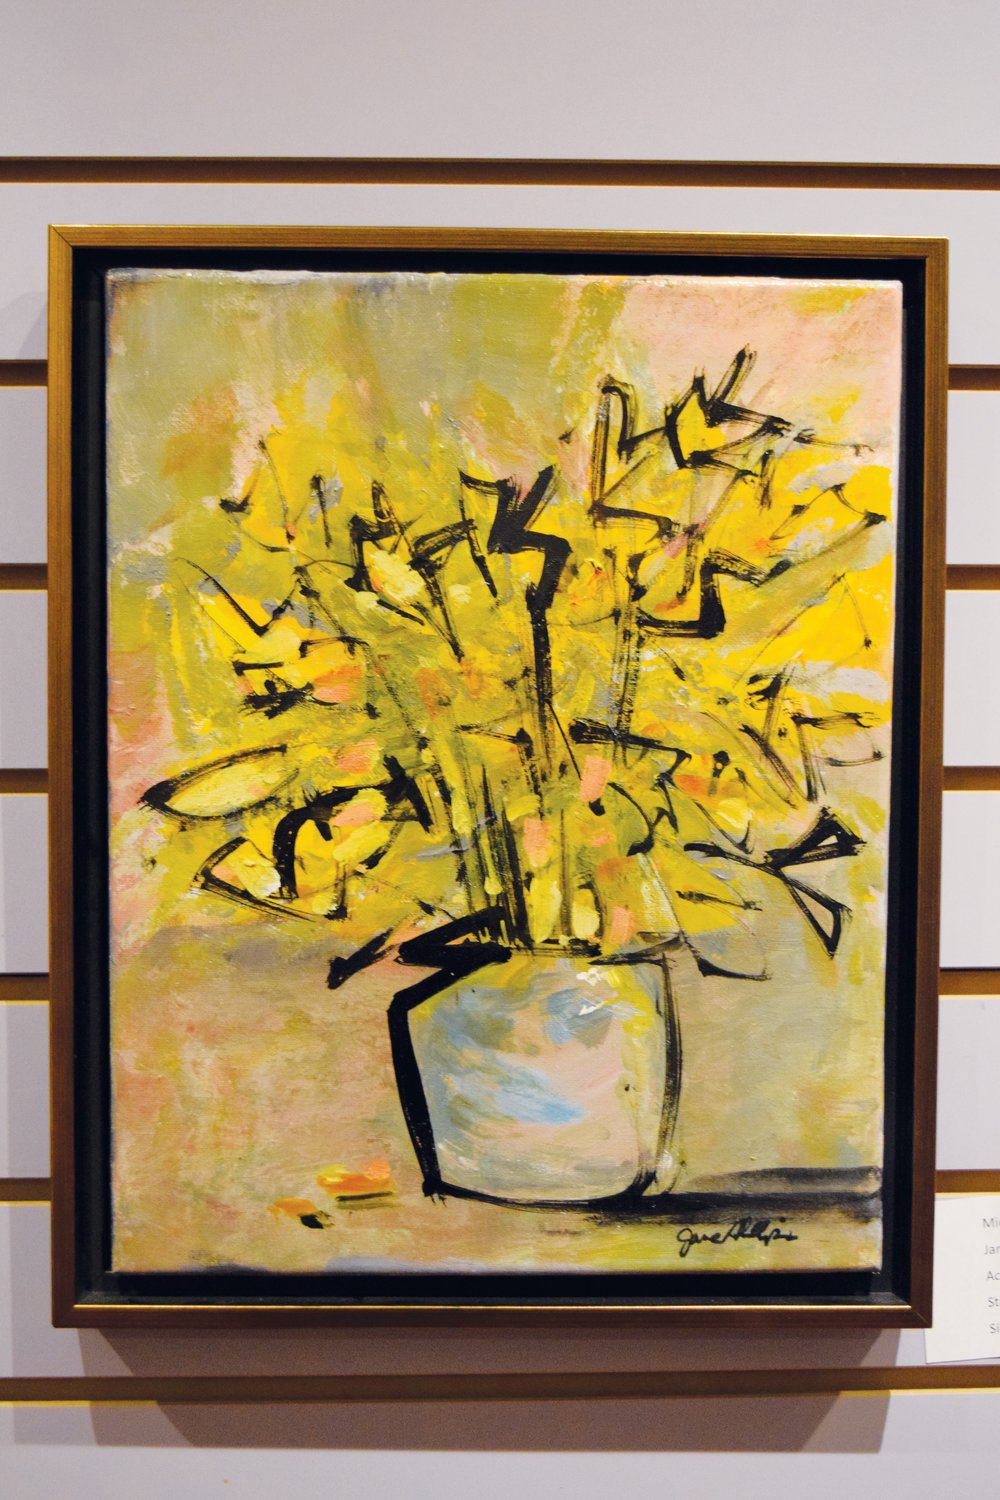 The art of Jane Phillips is among works by members of the Person County Artists Guild on exhibit throughout the month of December.